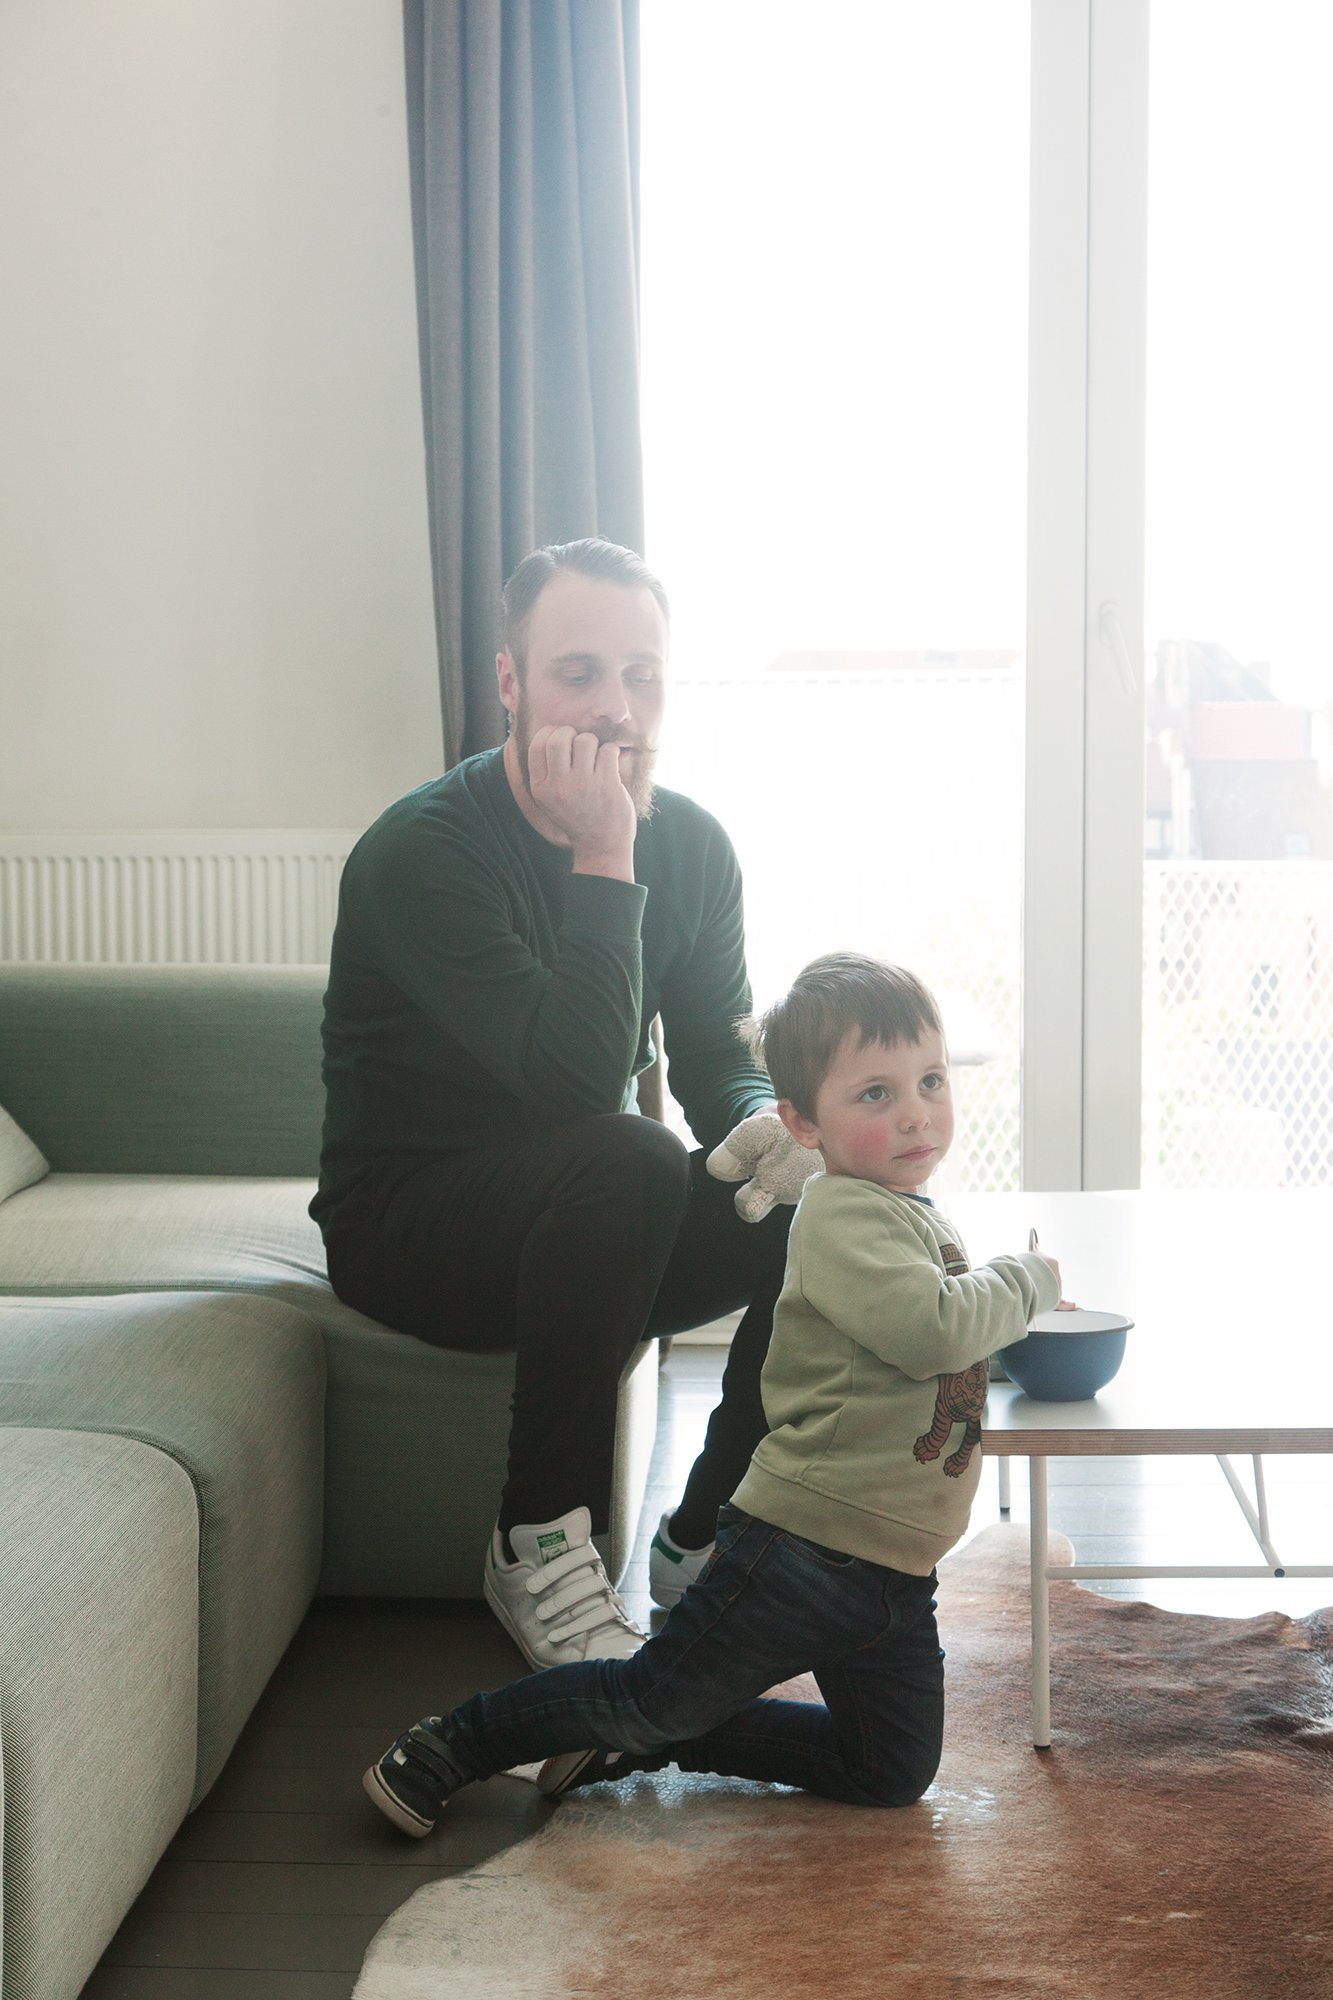 Kelly Claessens and Benoît Deneufbourg, <br> Leon 4 years old